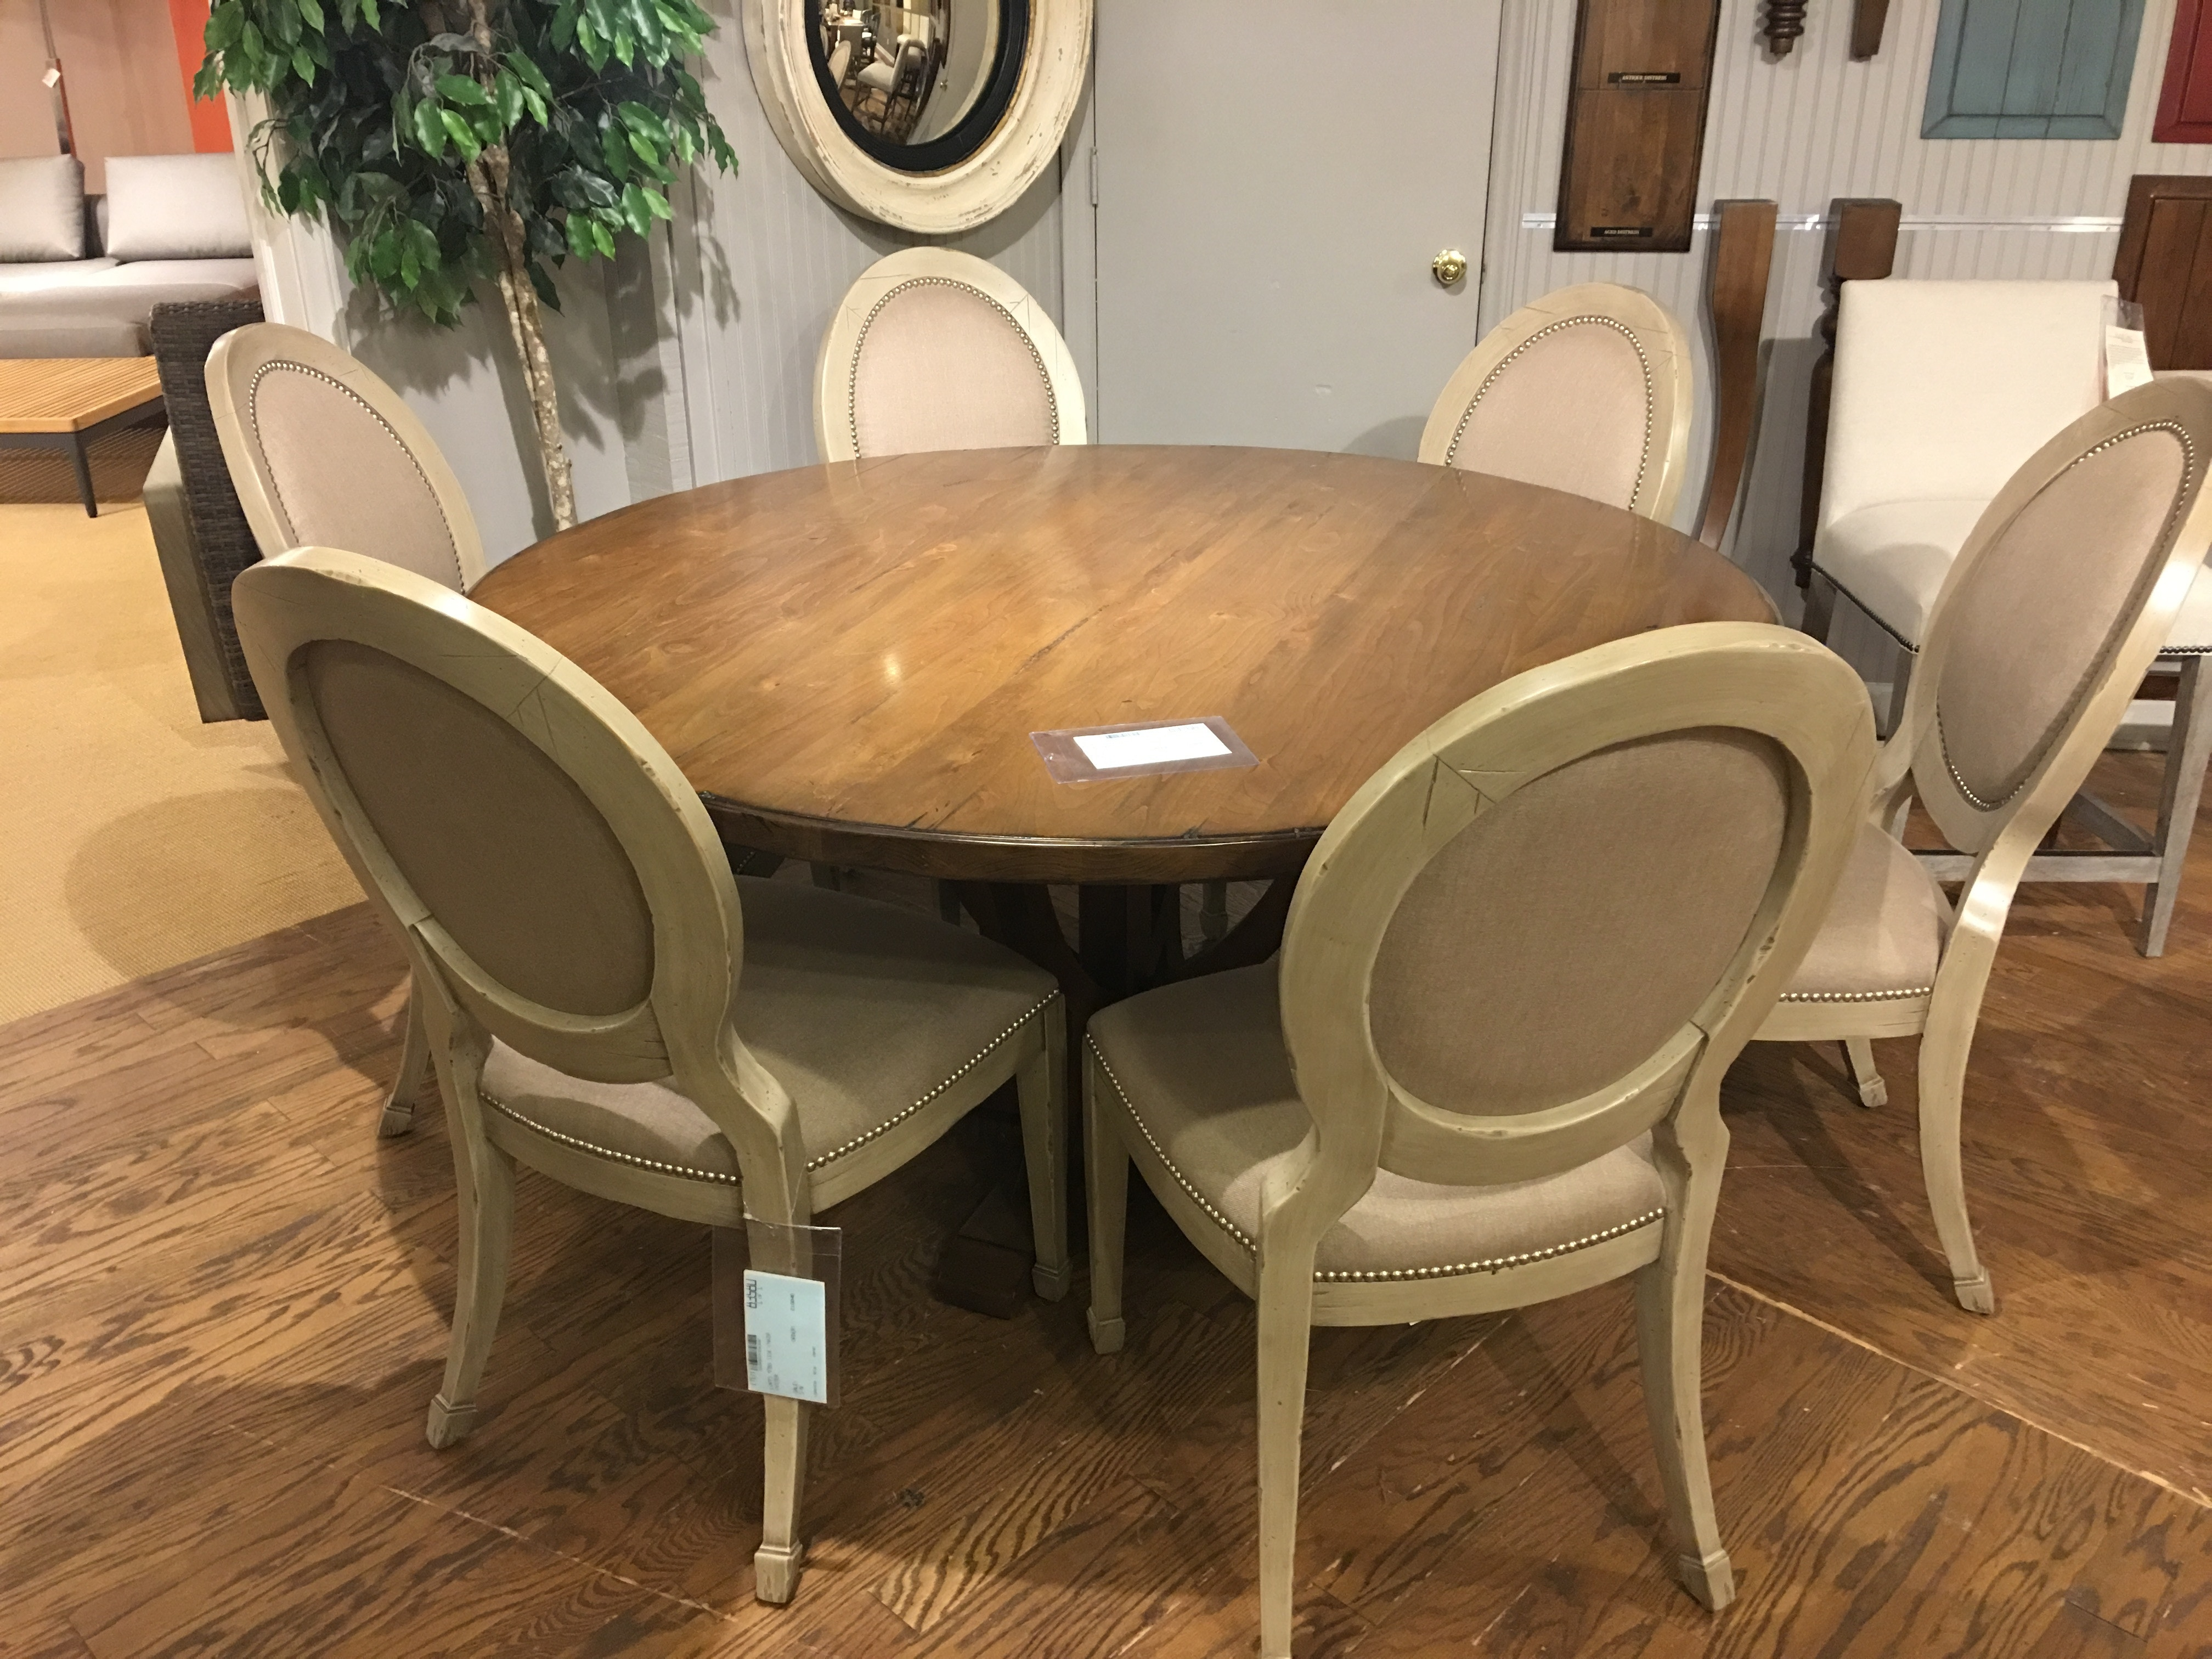 arlington round sienna pedestal dining room table w chestnut finish. 8460. round dining table arlington sienna pedestal room w chestnut finish